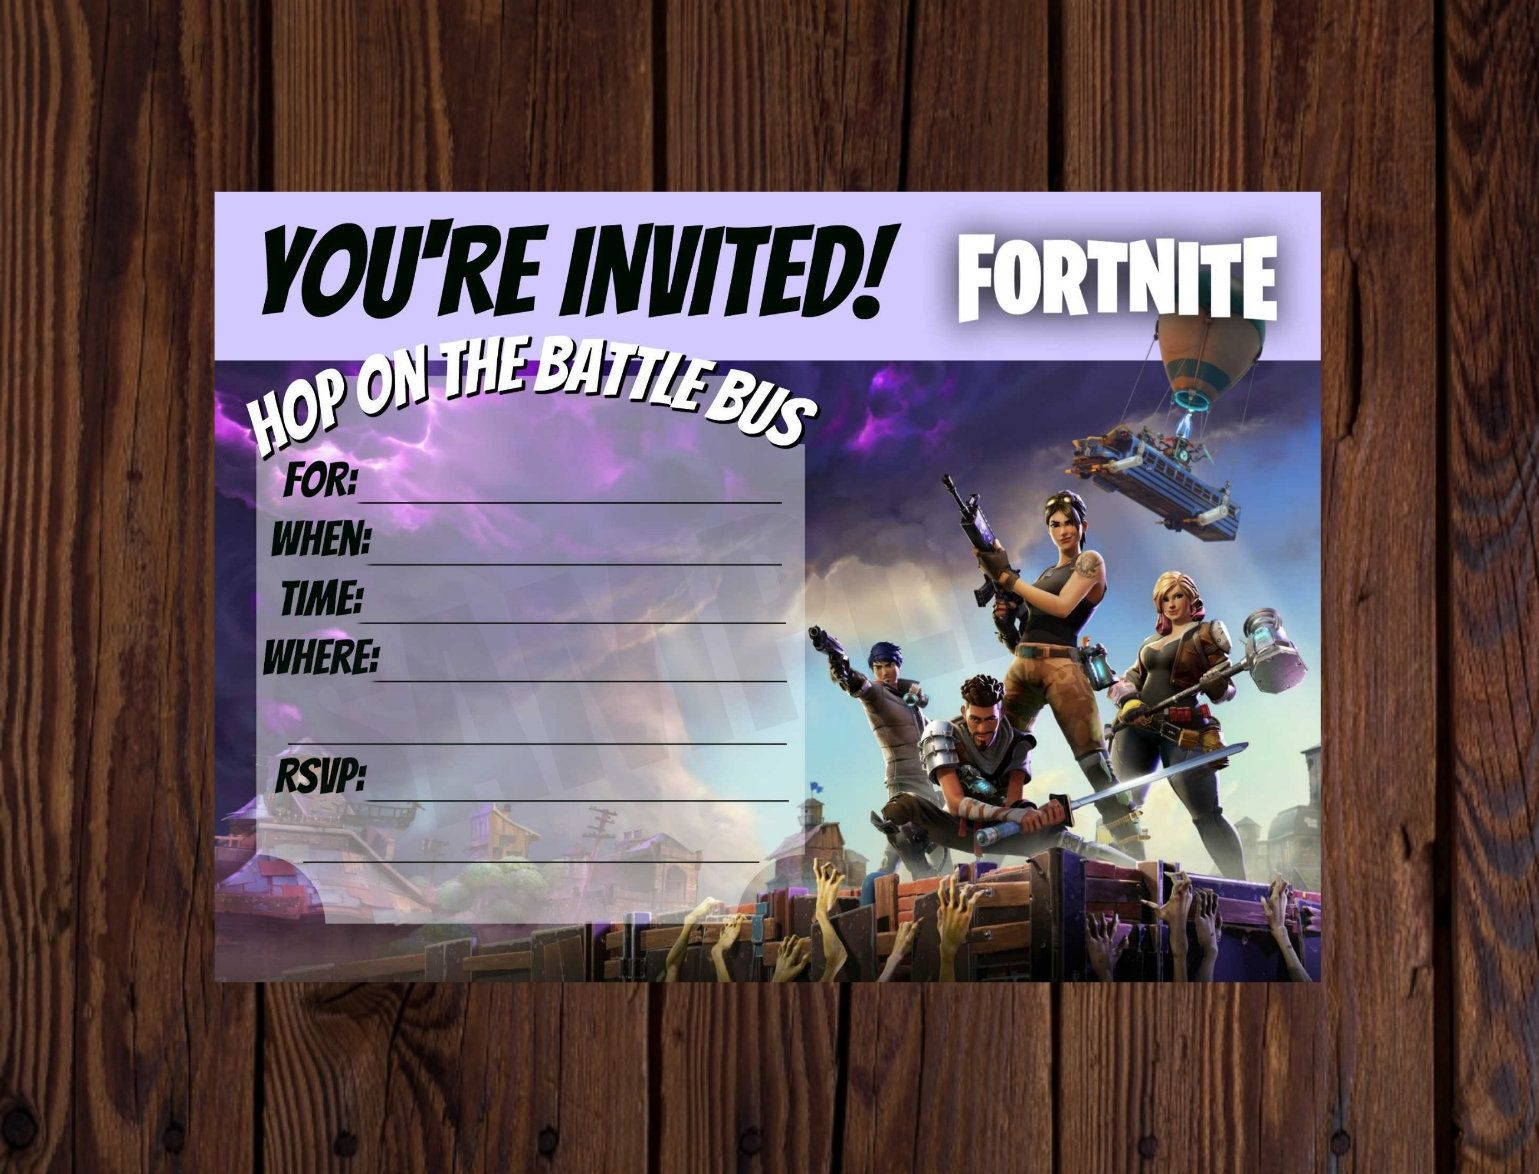 Fortnite Printable invite. Fortnite invitation. Fortnite birthday. Instant Download. Free 4x6 thank you card. by ZarleeLuxCreations on Etsy